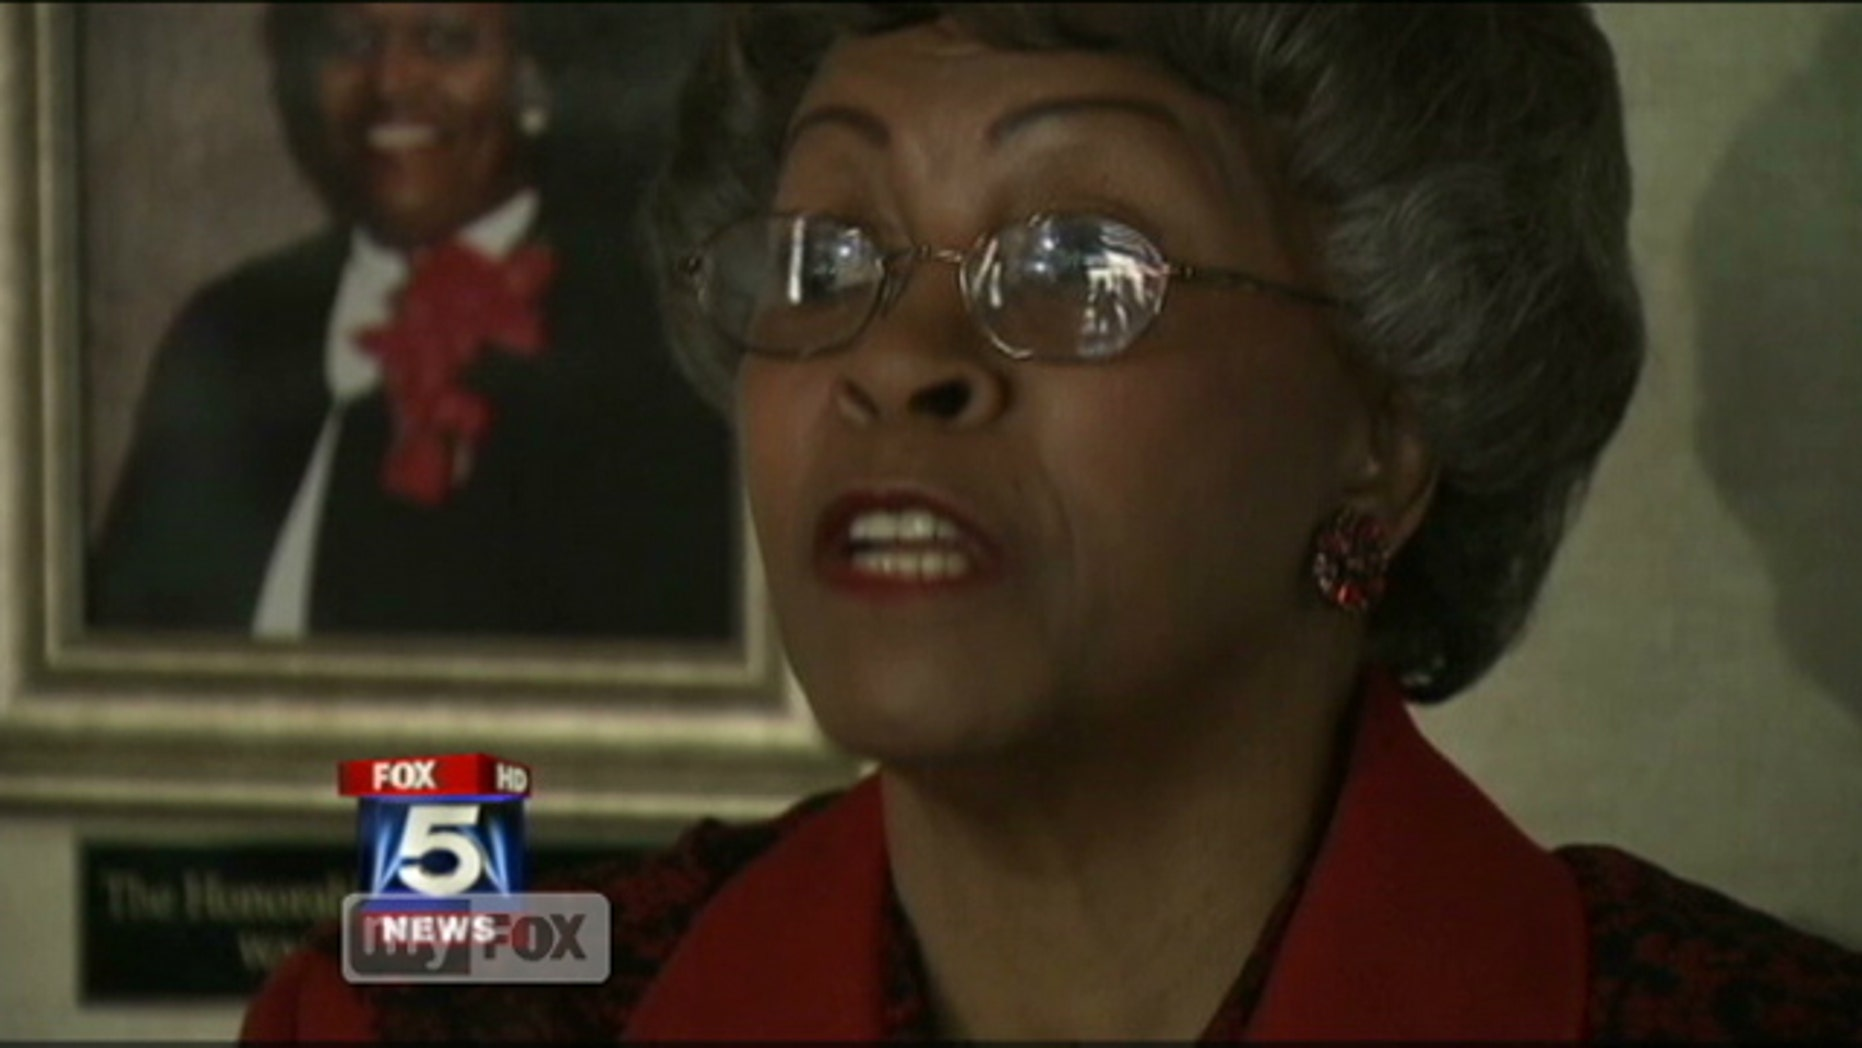 East Point, Ga., Mayor Earnestine Pittman is challenging the city council over utility rate hikes.